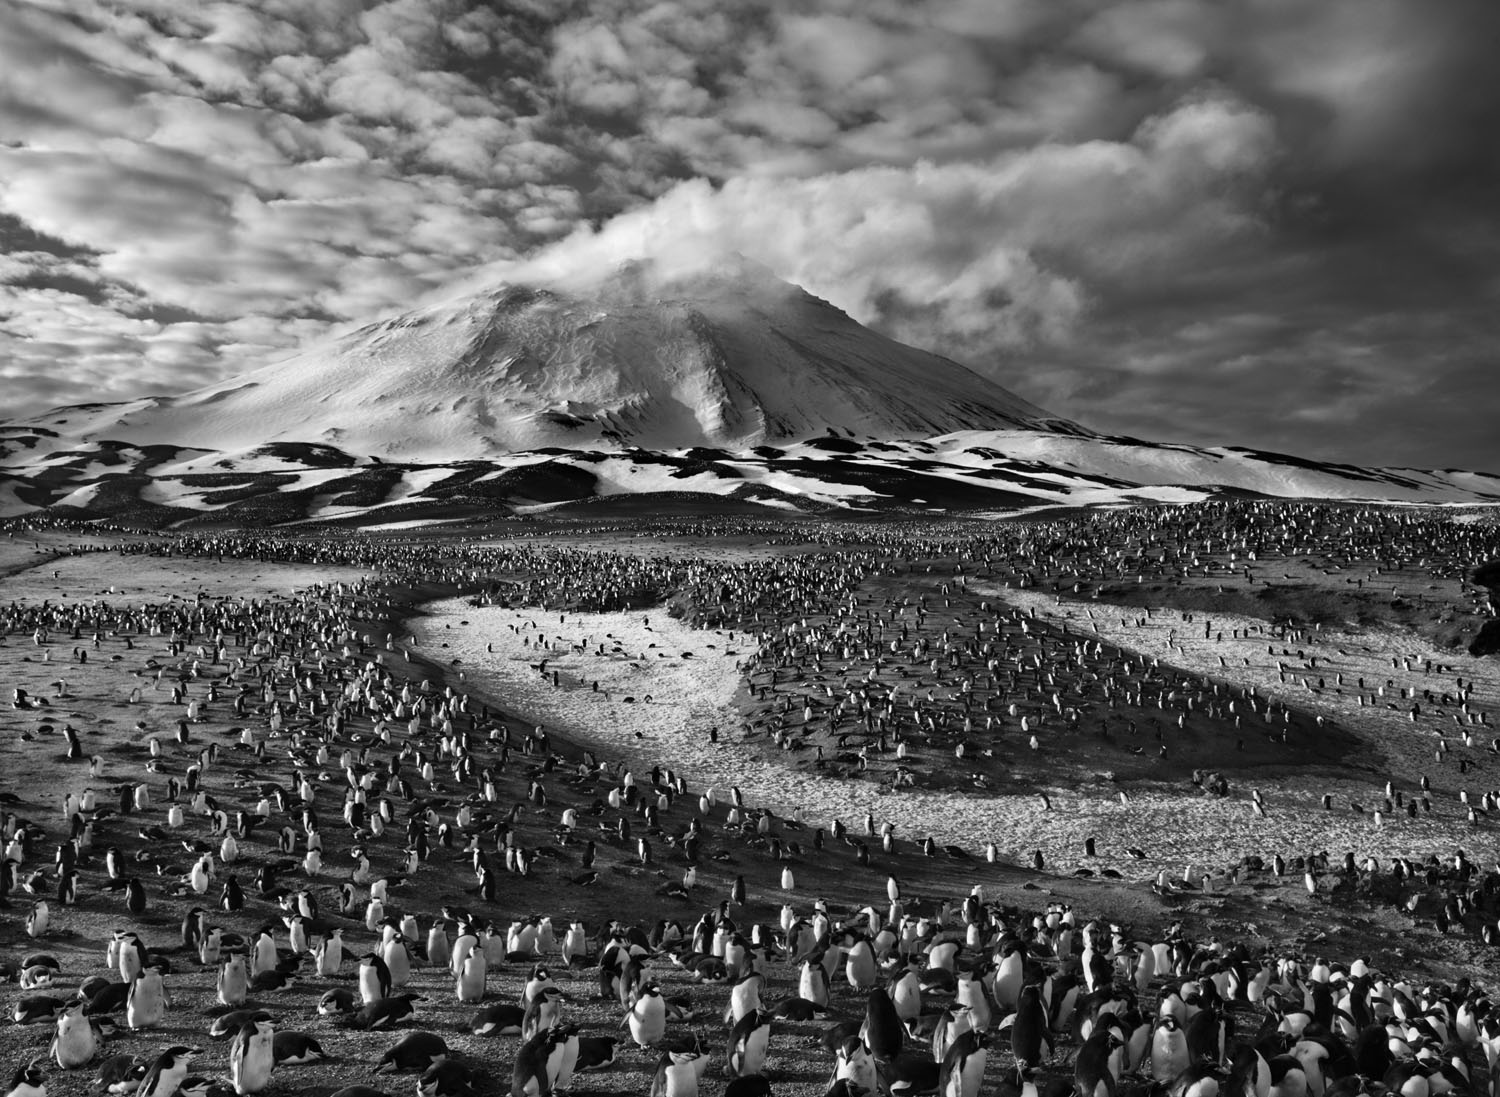 The earth's largest concentration of penguins inhabits tiny Zavodovski Island, one of the nine volcanic islands in the South Sandwich chain, in the far South Atlantic. A 1997 survey estimated that it's home to about 750,000 chinstrap penguin couples as well as a large colony of macaroni penguins. The island's active volcano is visible in the background.